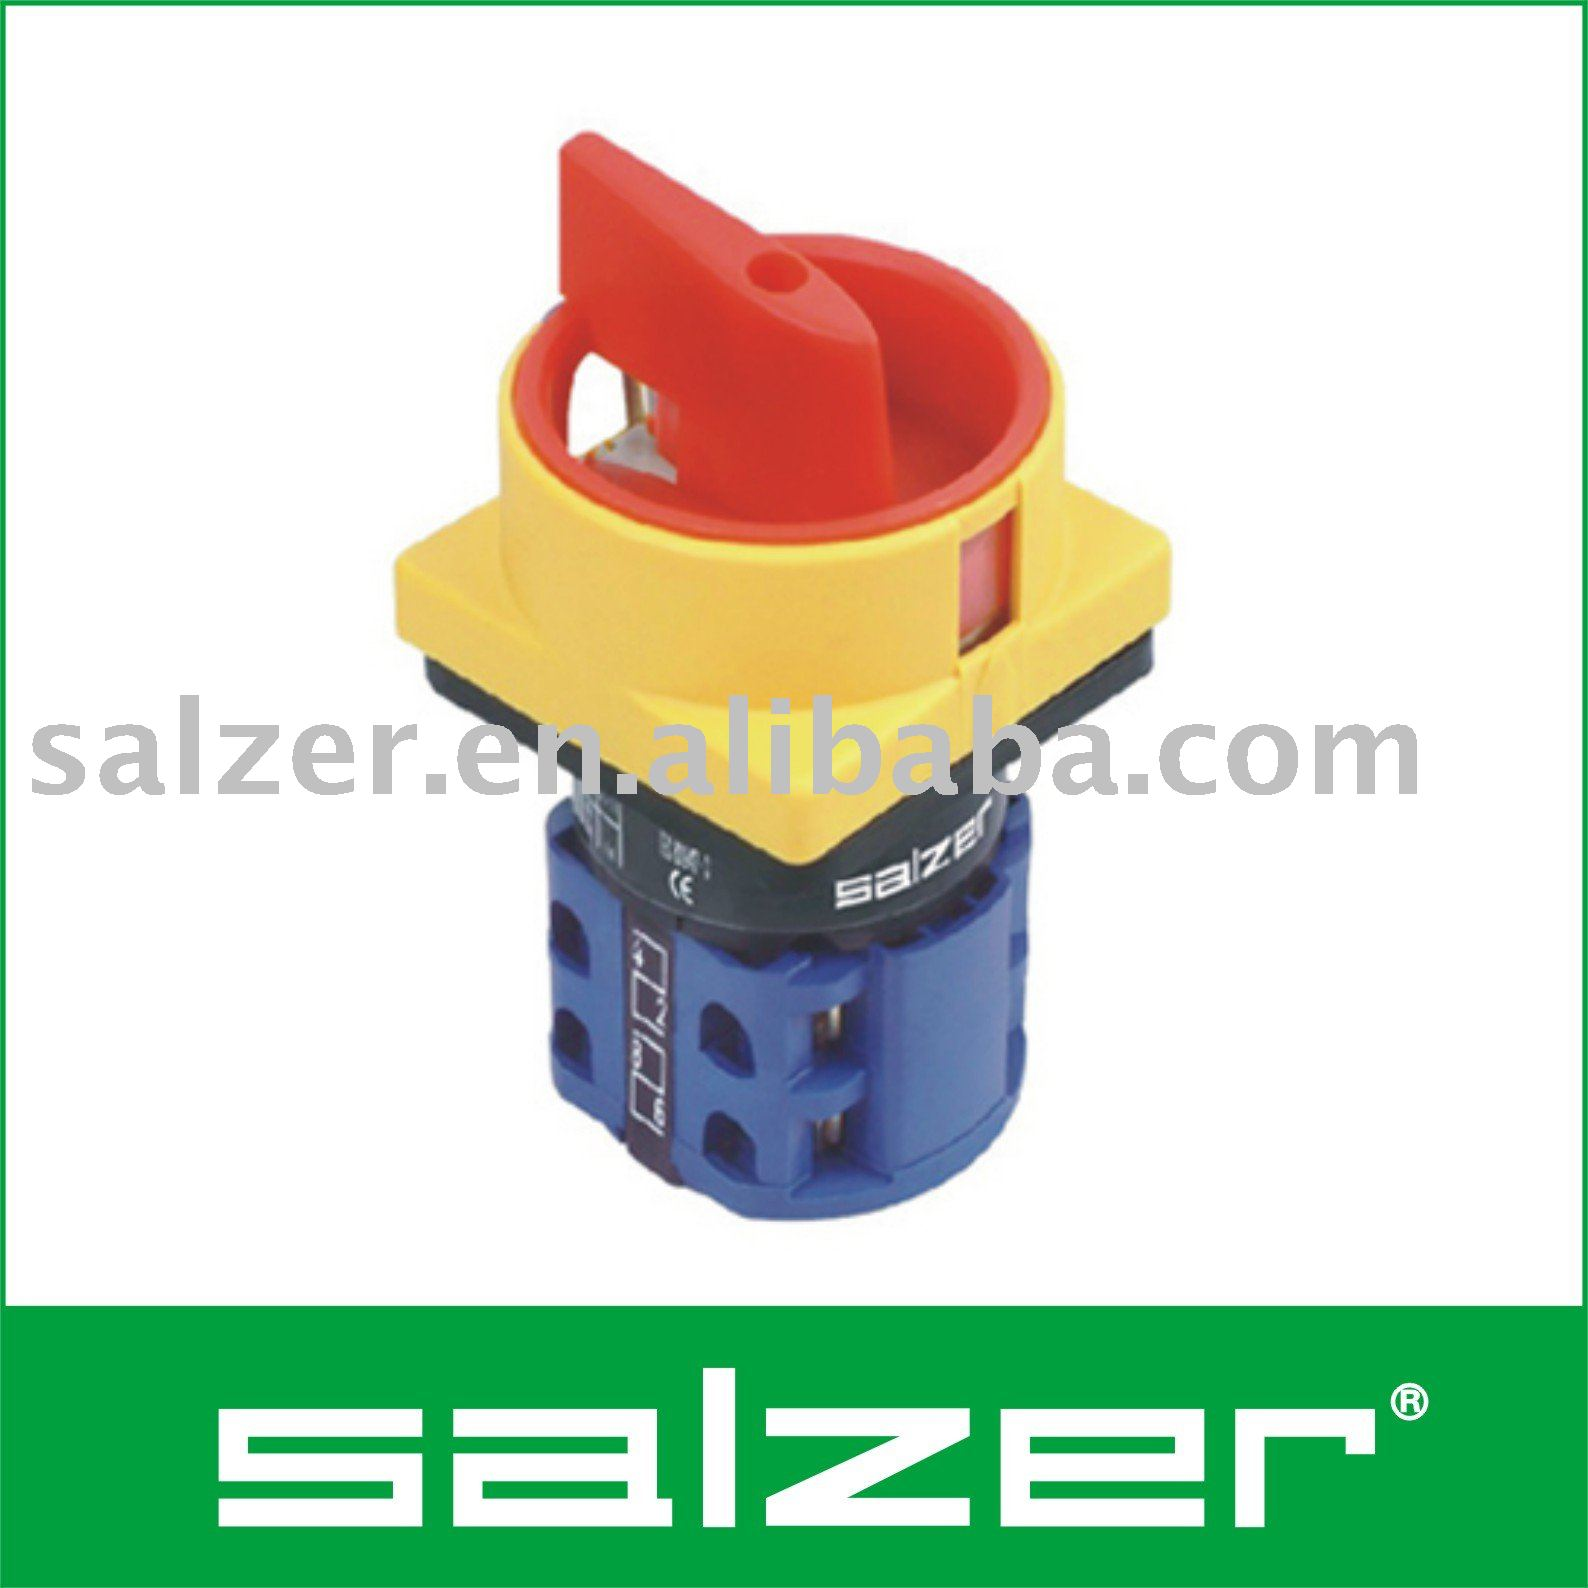 hight resolution of salzer ac isolator switch off on tuv salzer ac isolator switch off on salzer switch wiring diagram